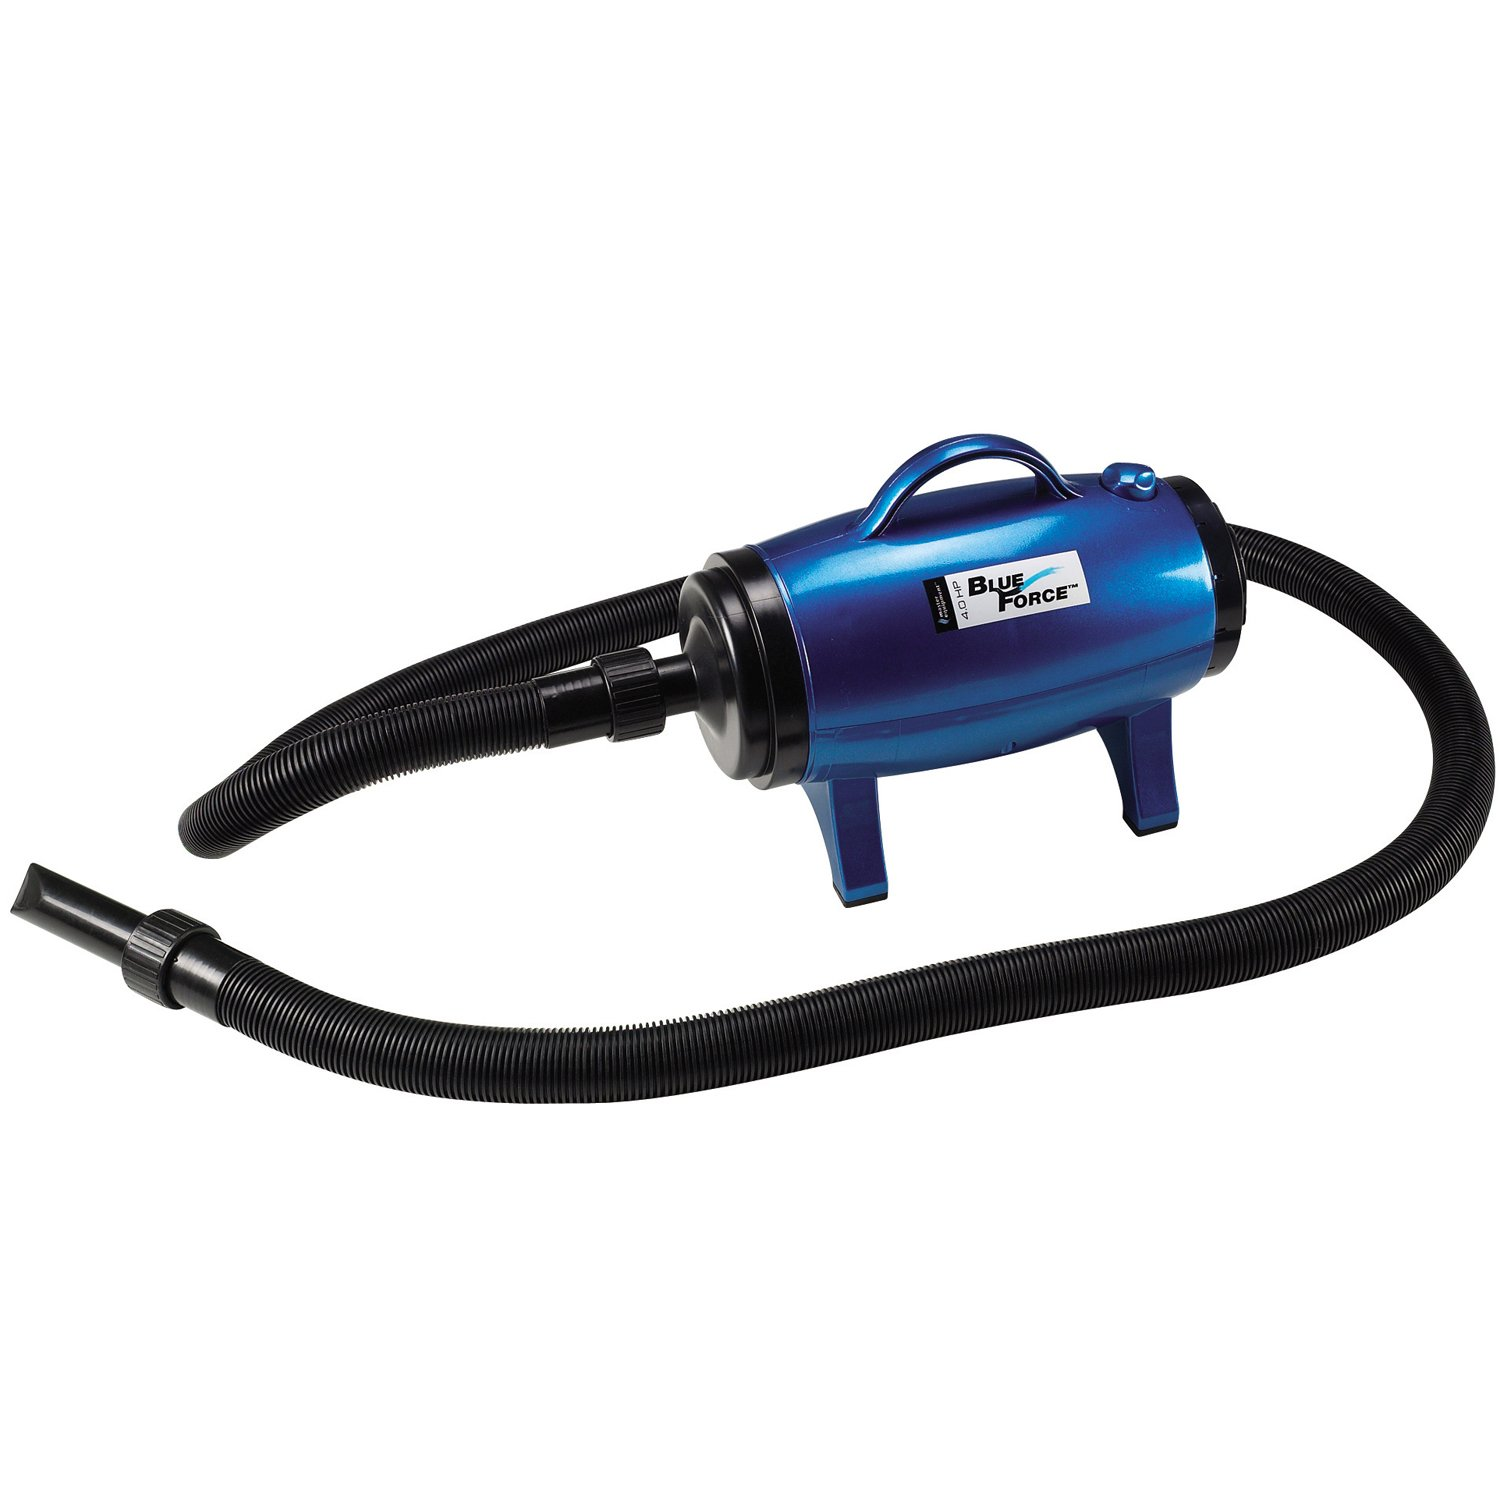 Master Equipment bluee Force Pet Dryer, 4.0 Horse Power